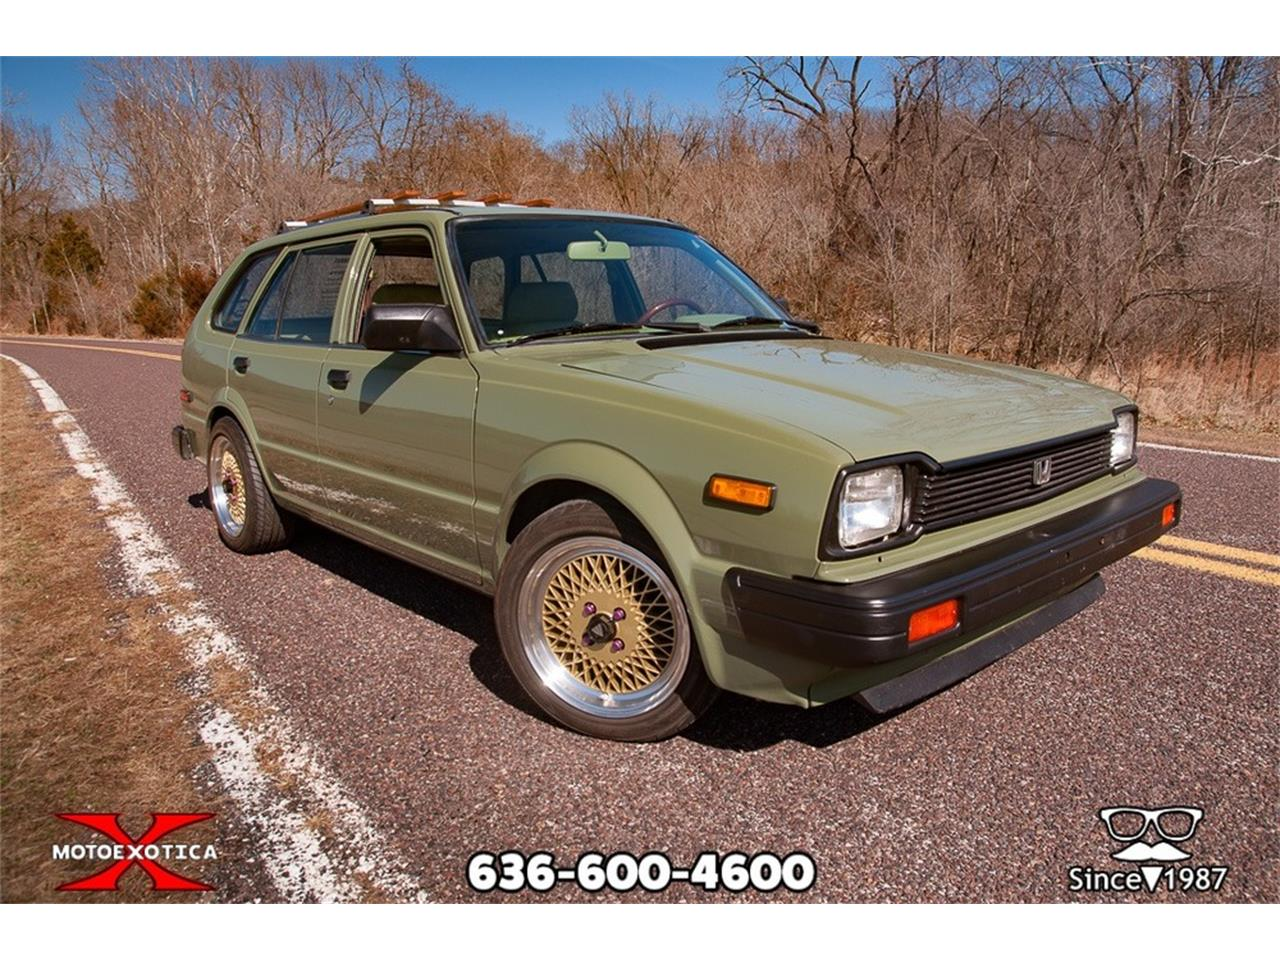 1983 Honda Civic Wagon for sale in St. Louis, MO – photo 6